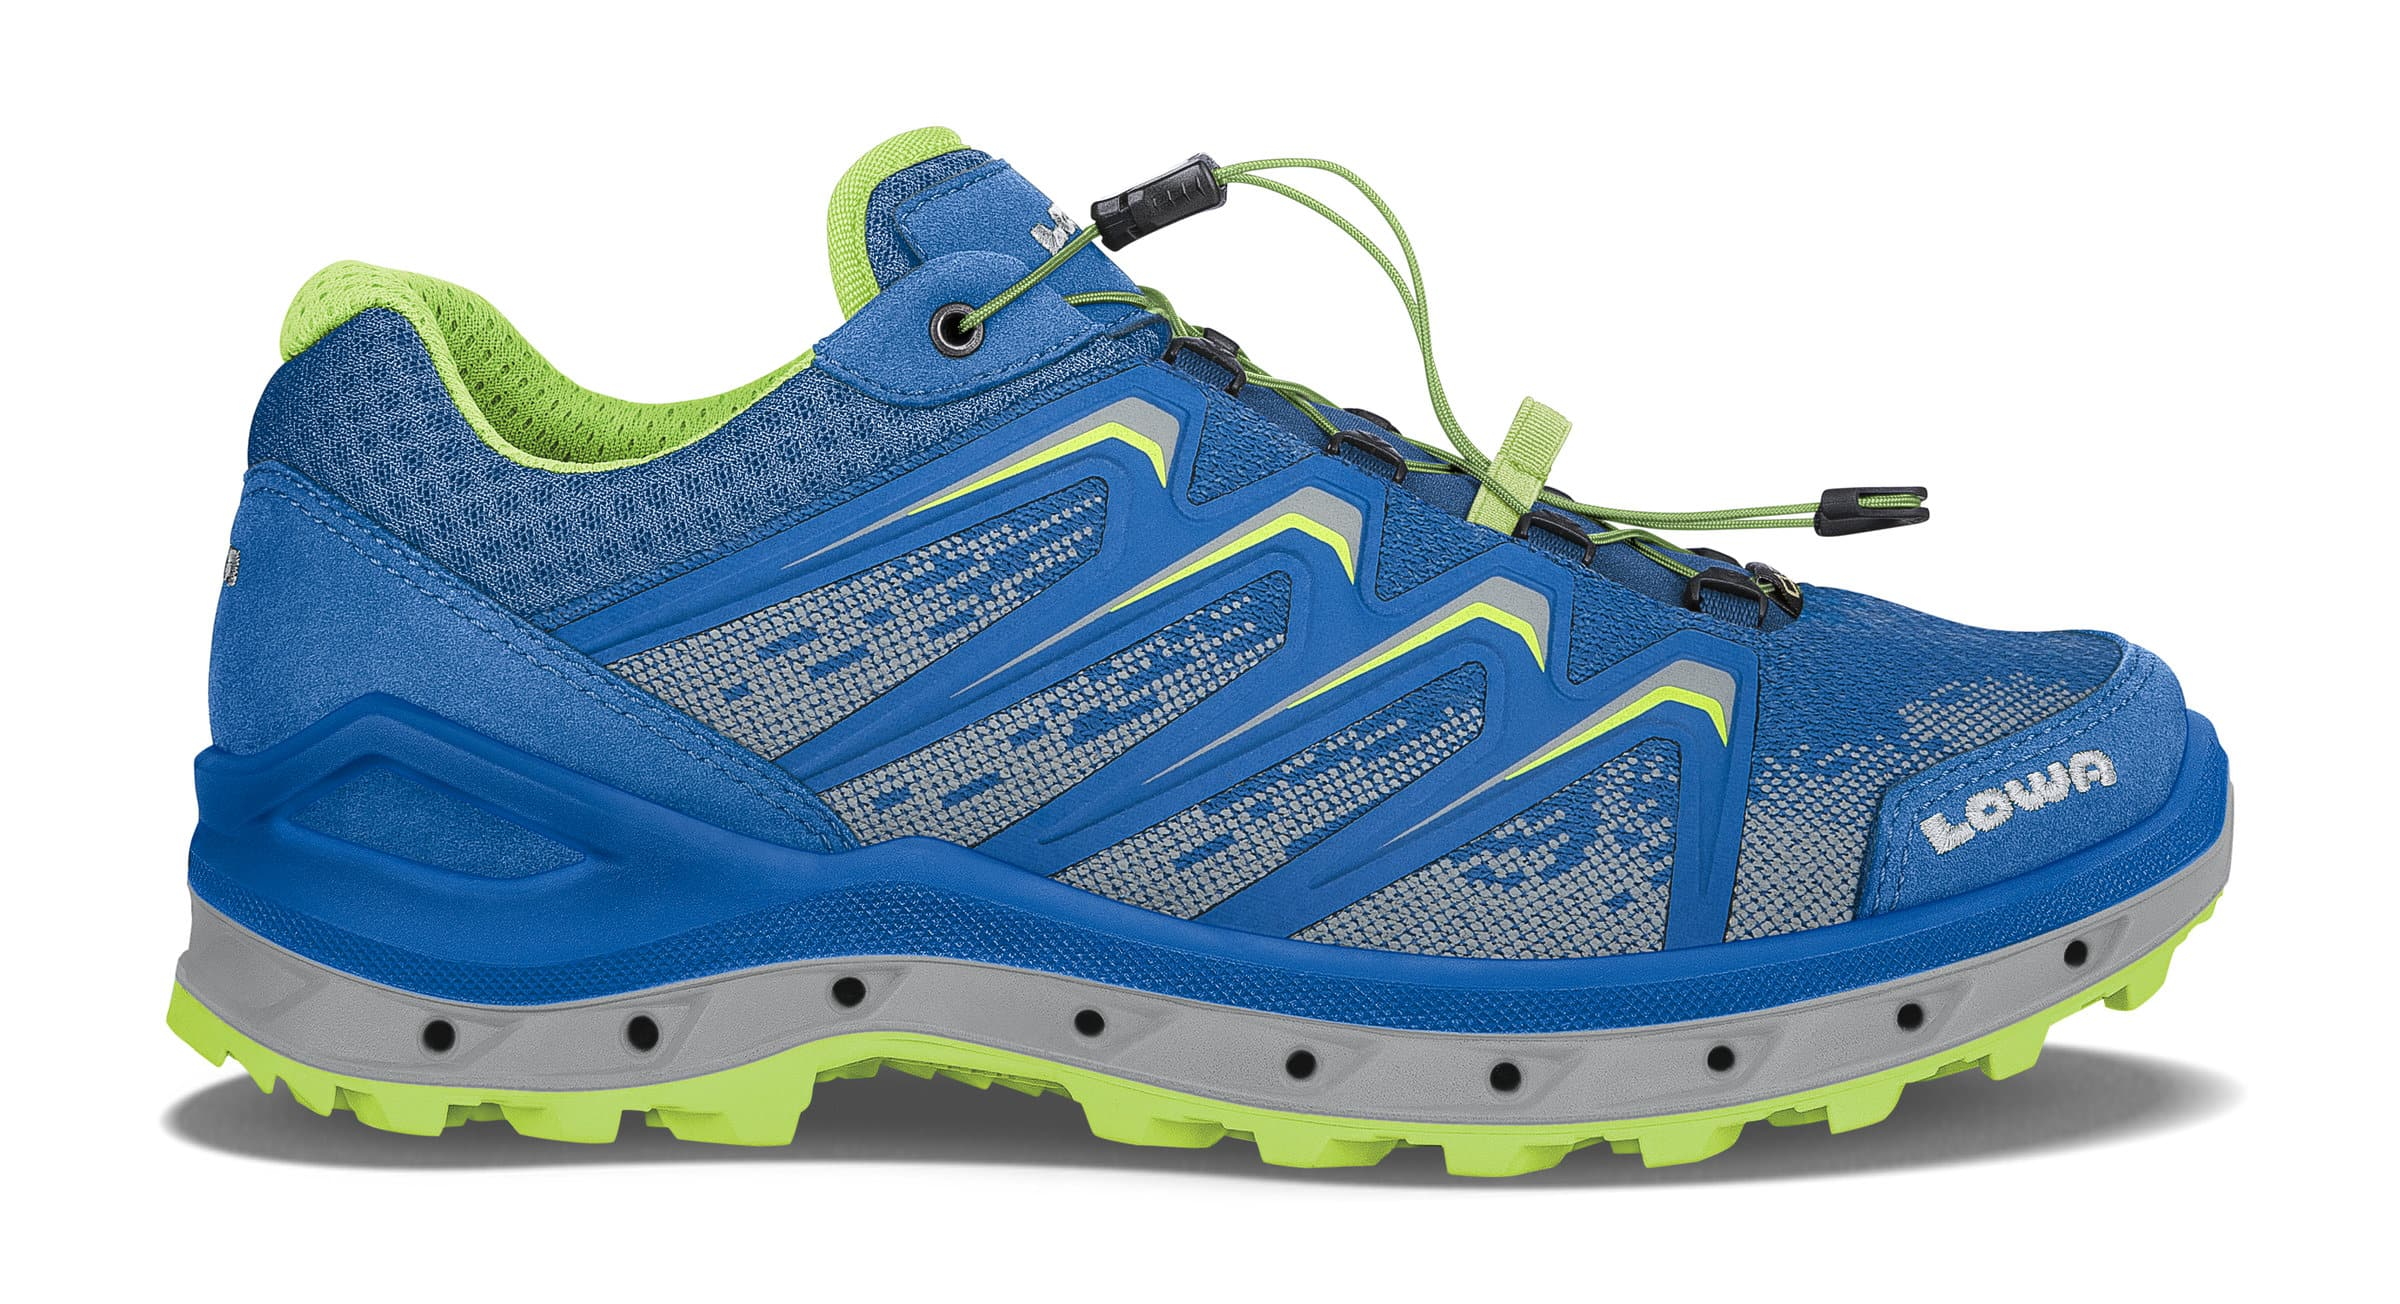 Lowa Aerox GTX Lo Chaussures polyvalentes pour homme